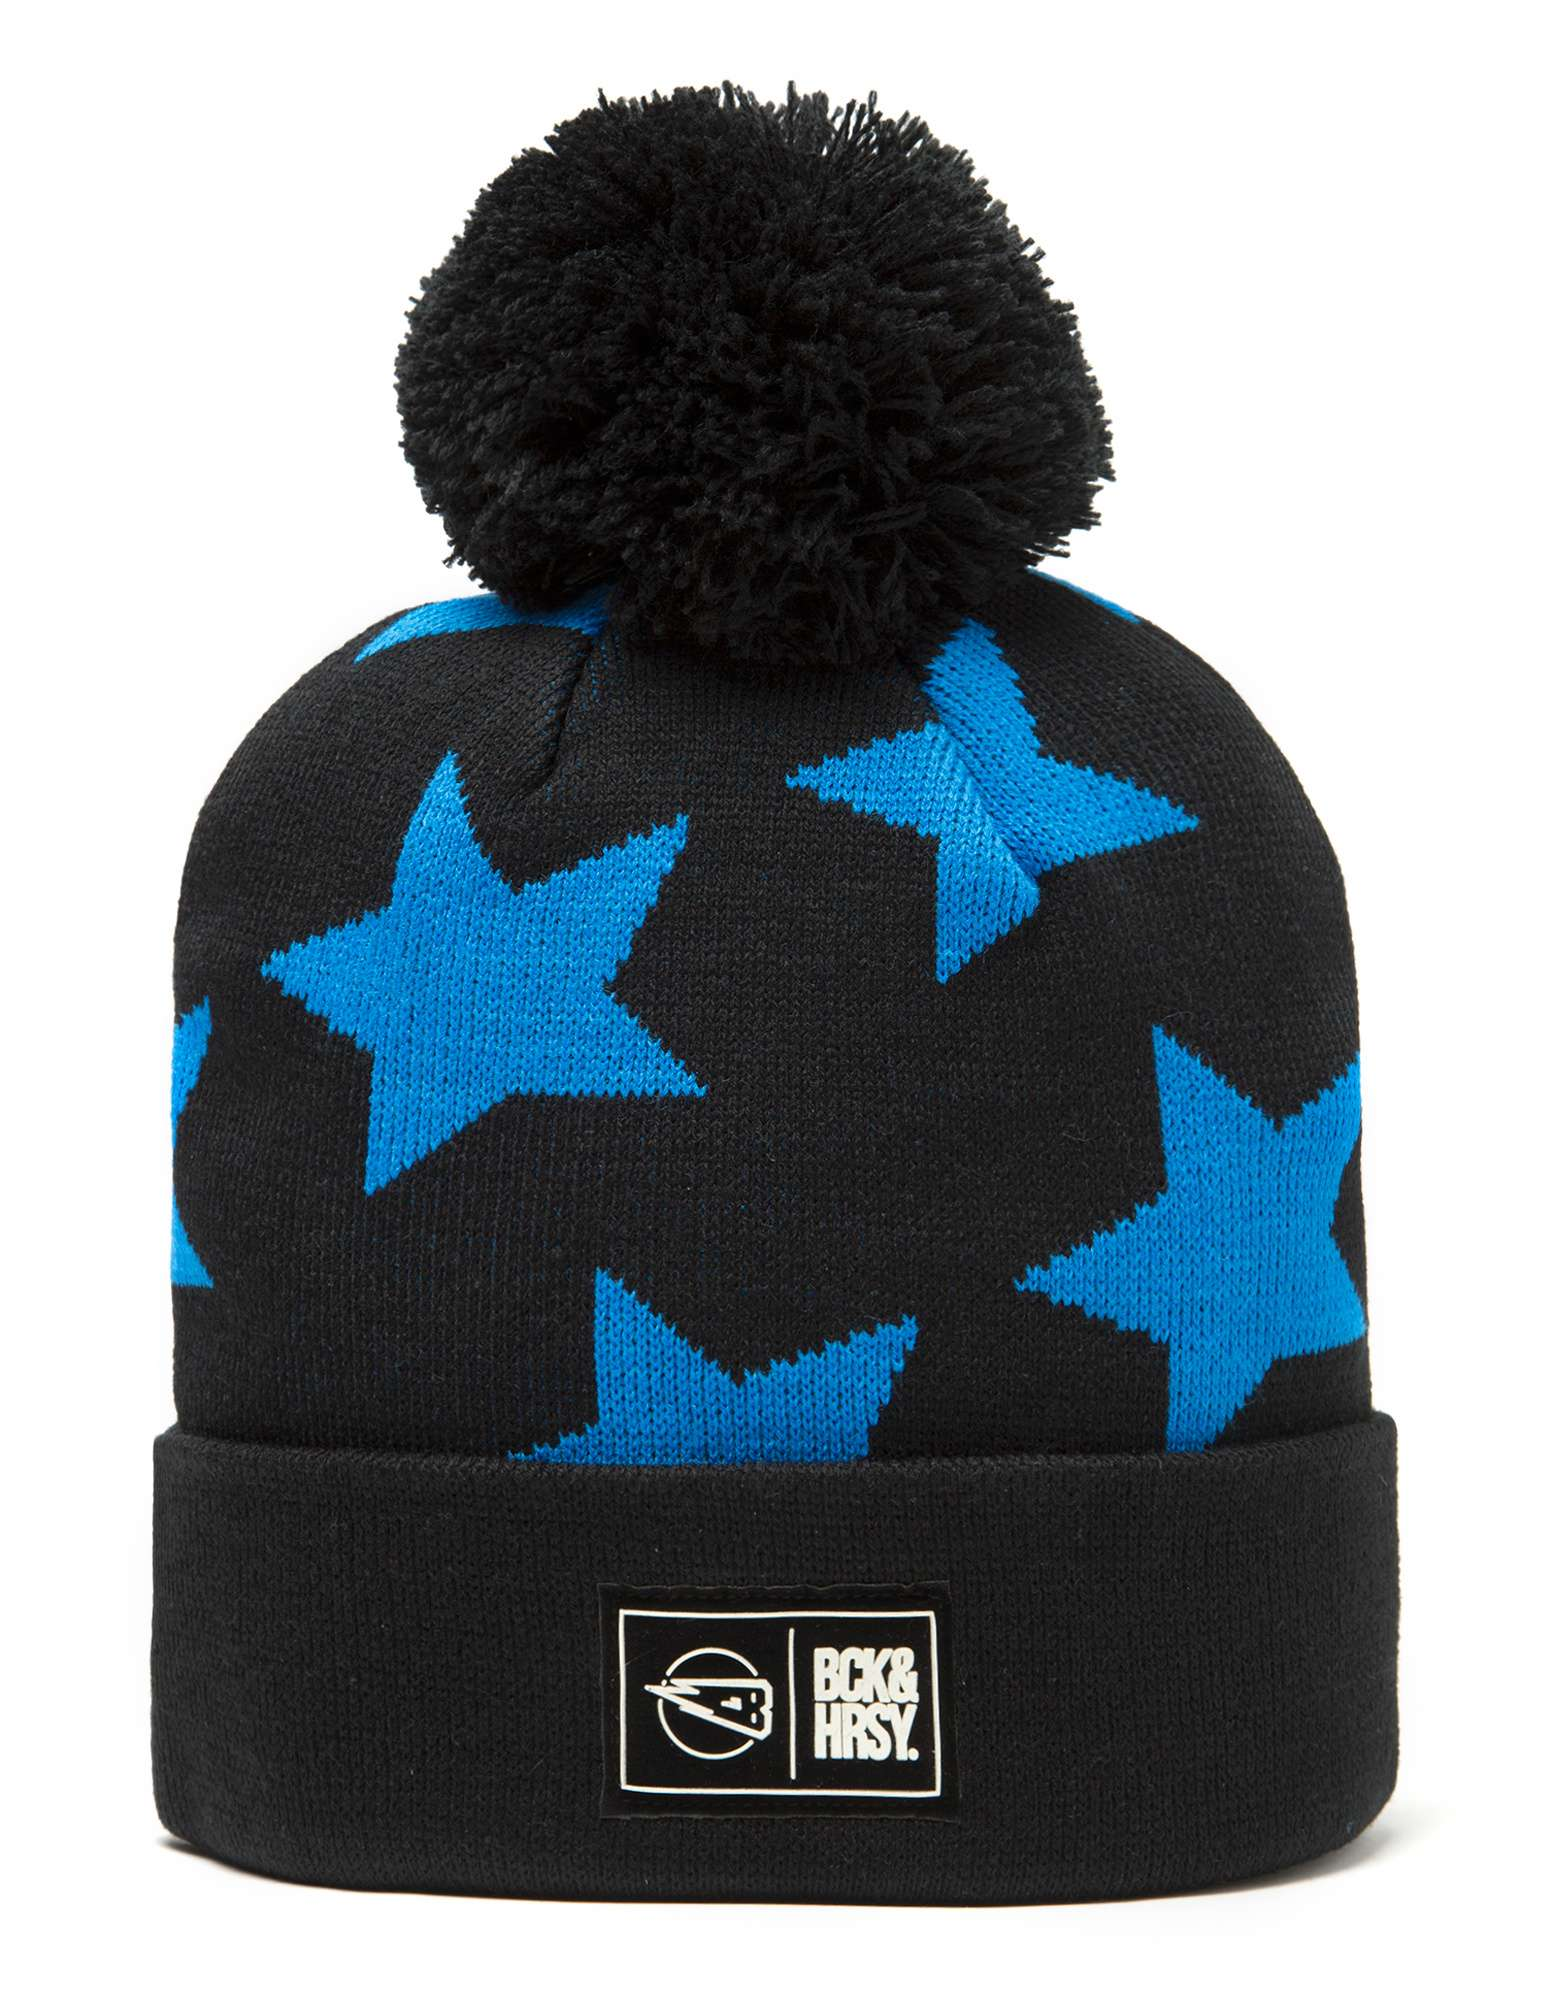 Beck and Hersey New York Stars Bobble Hat